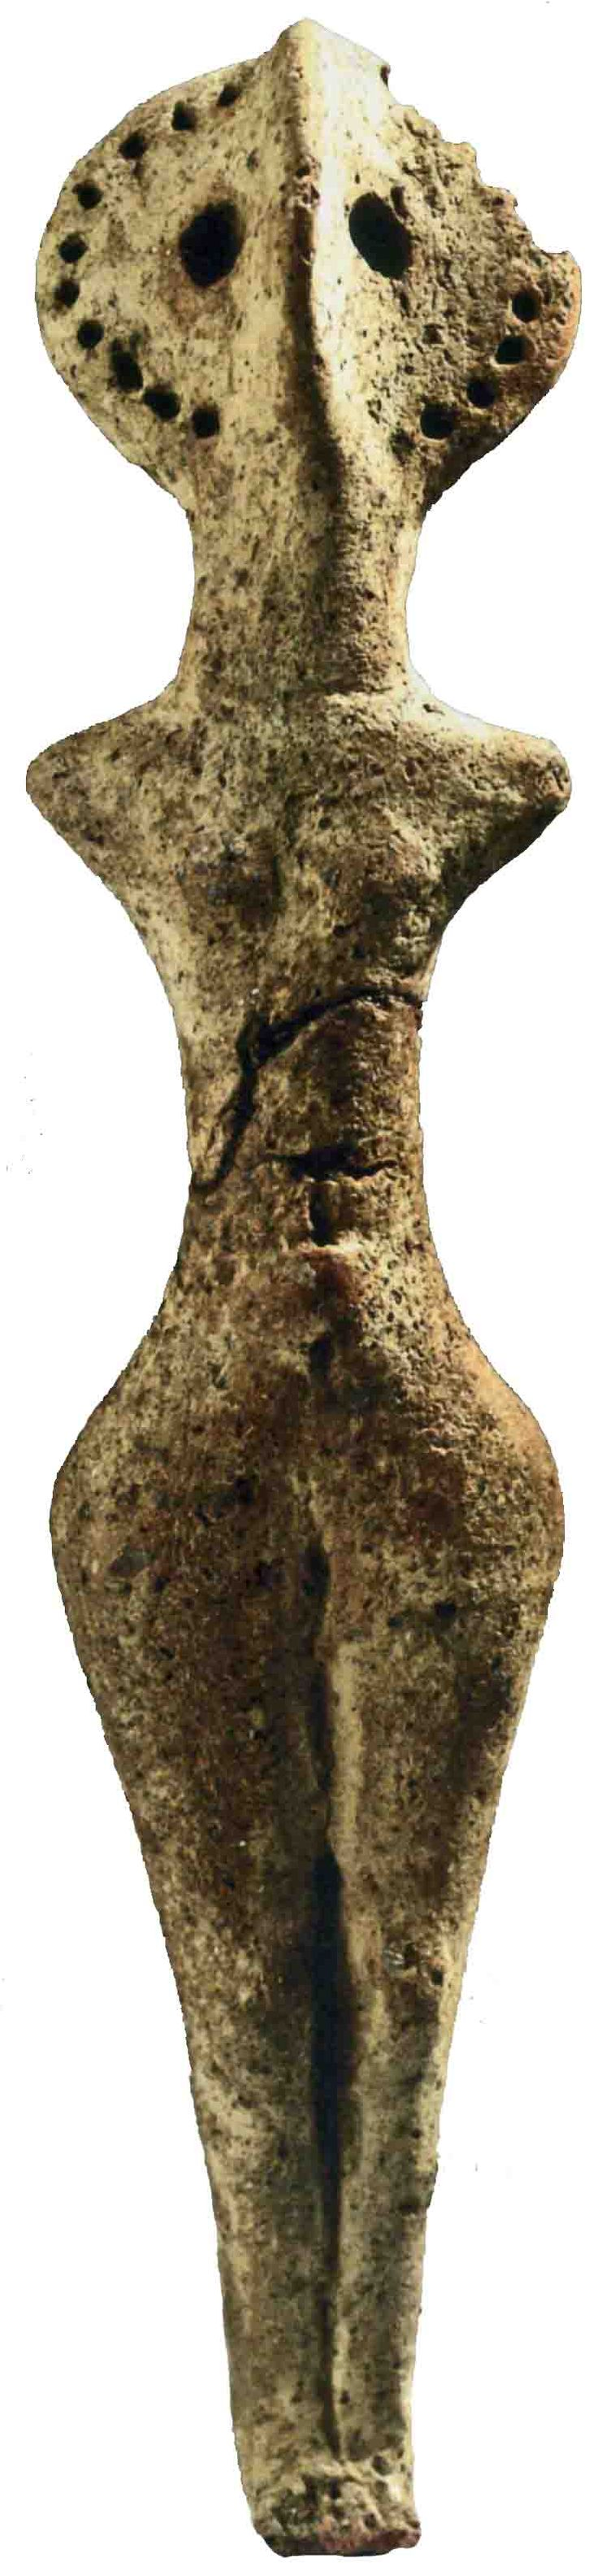 The Cucuteni-Trypillian culture, is a Neolithic–Eneolithic archaeological culture which existed from approximately 4800 to 3000 BC from the Carpathian Mountains to the Dniester and Dnieper regions in modern-day Romania, Moldova, Ukraine.